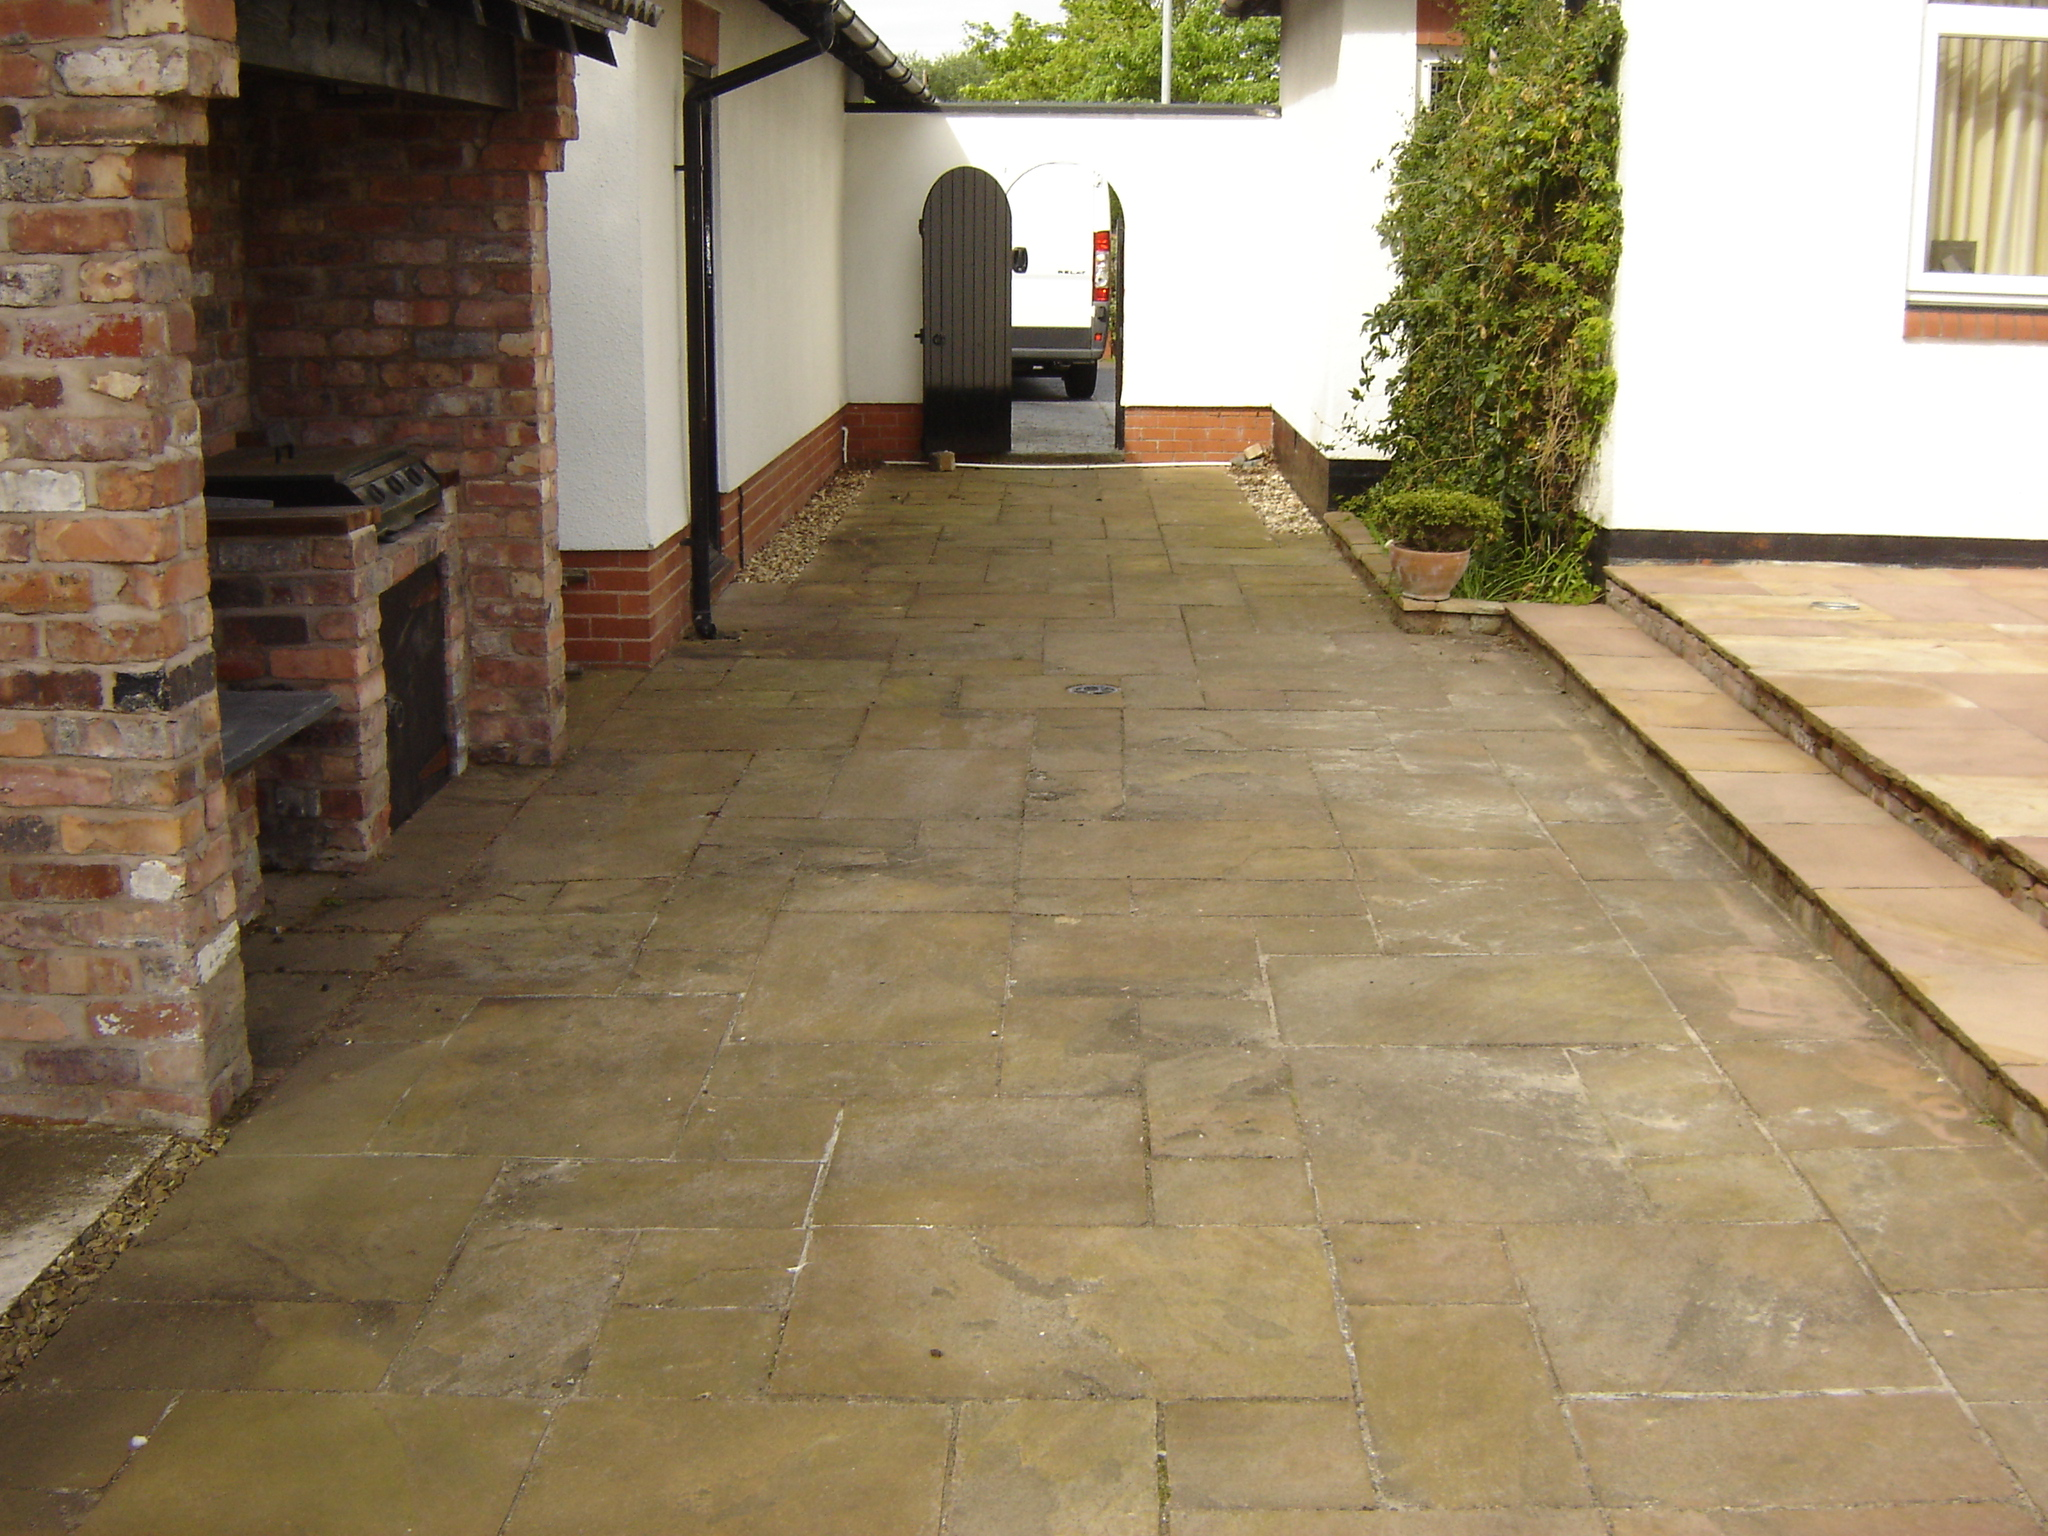 Indian Stone Patio before pressure washing